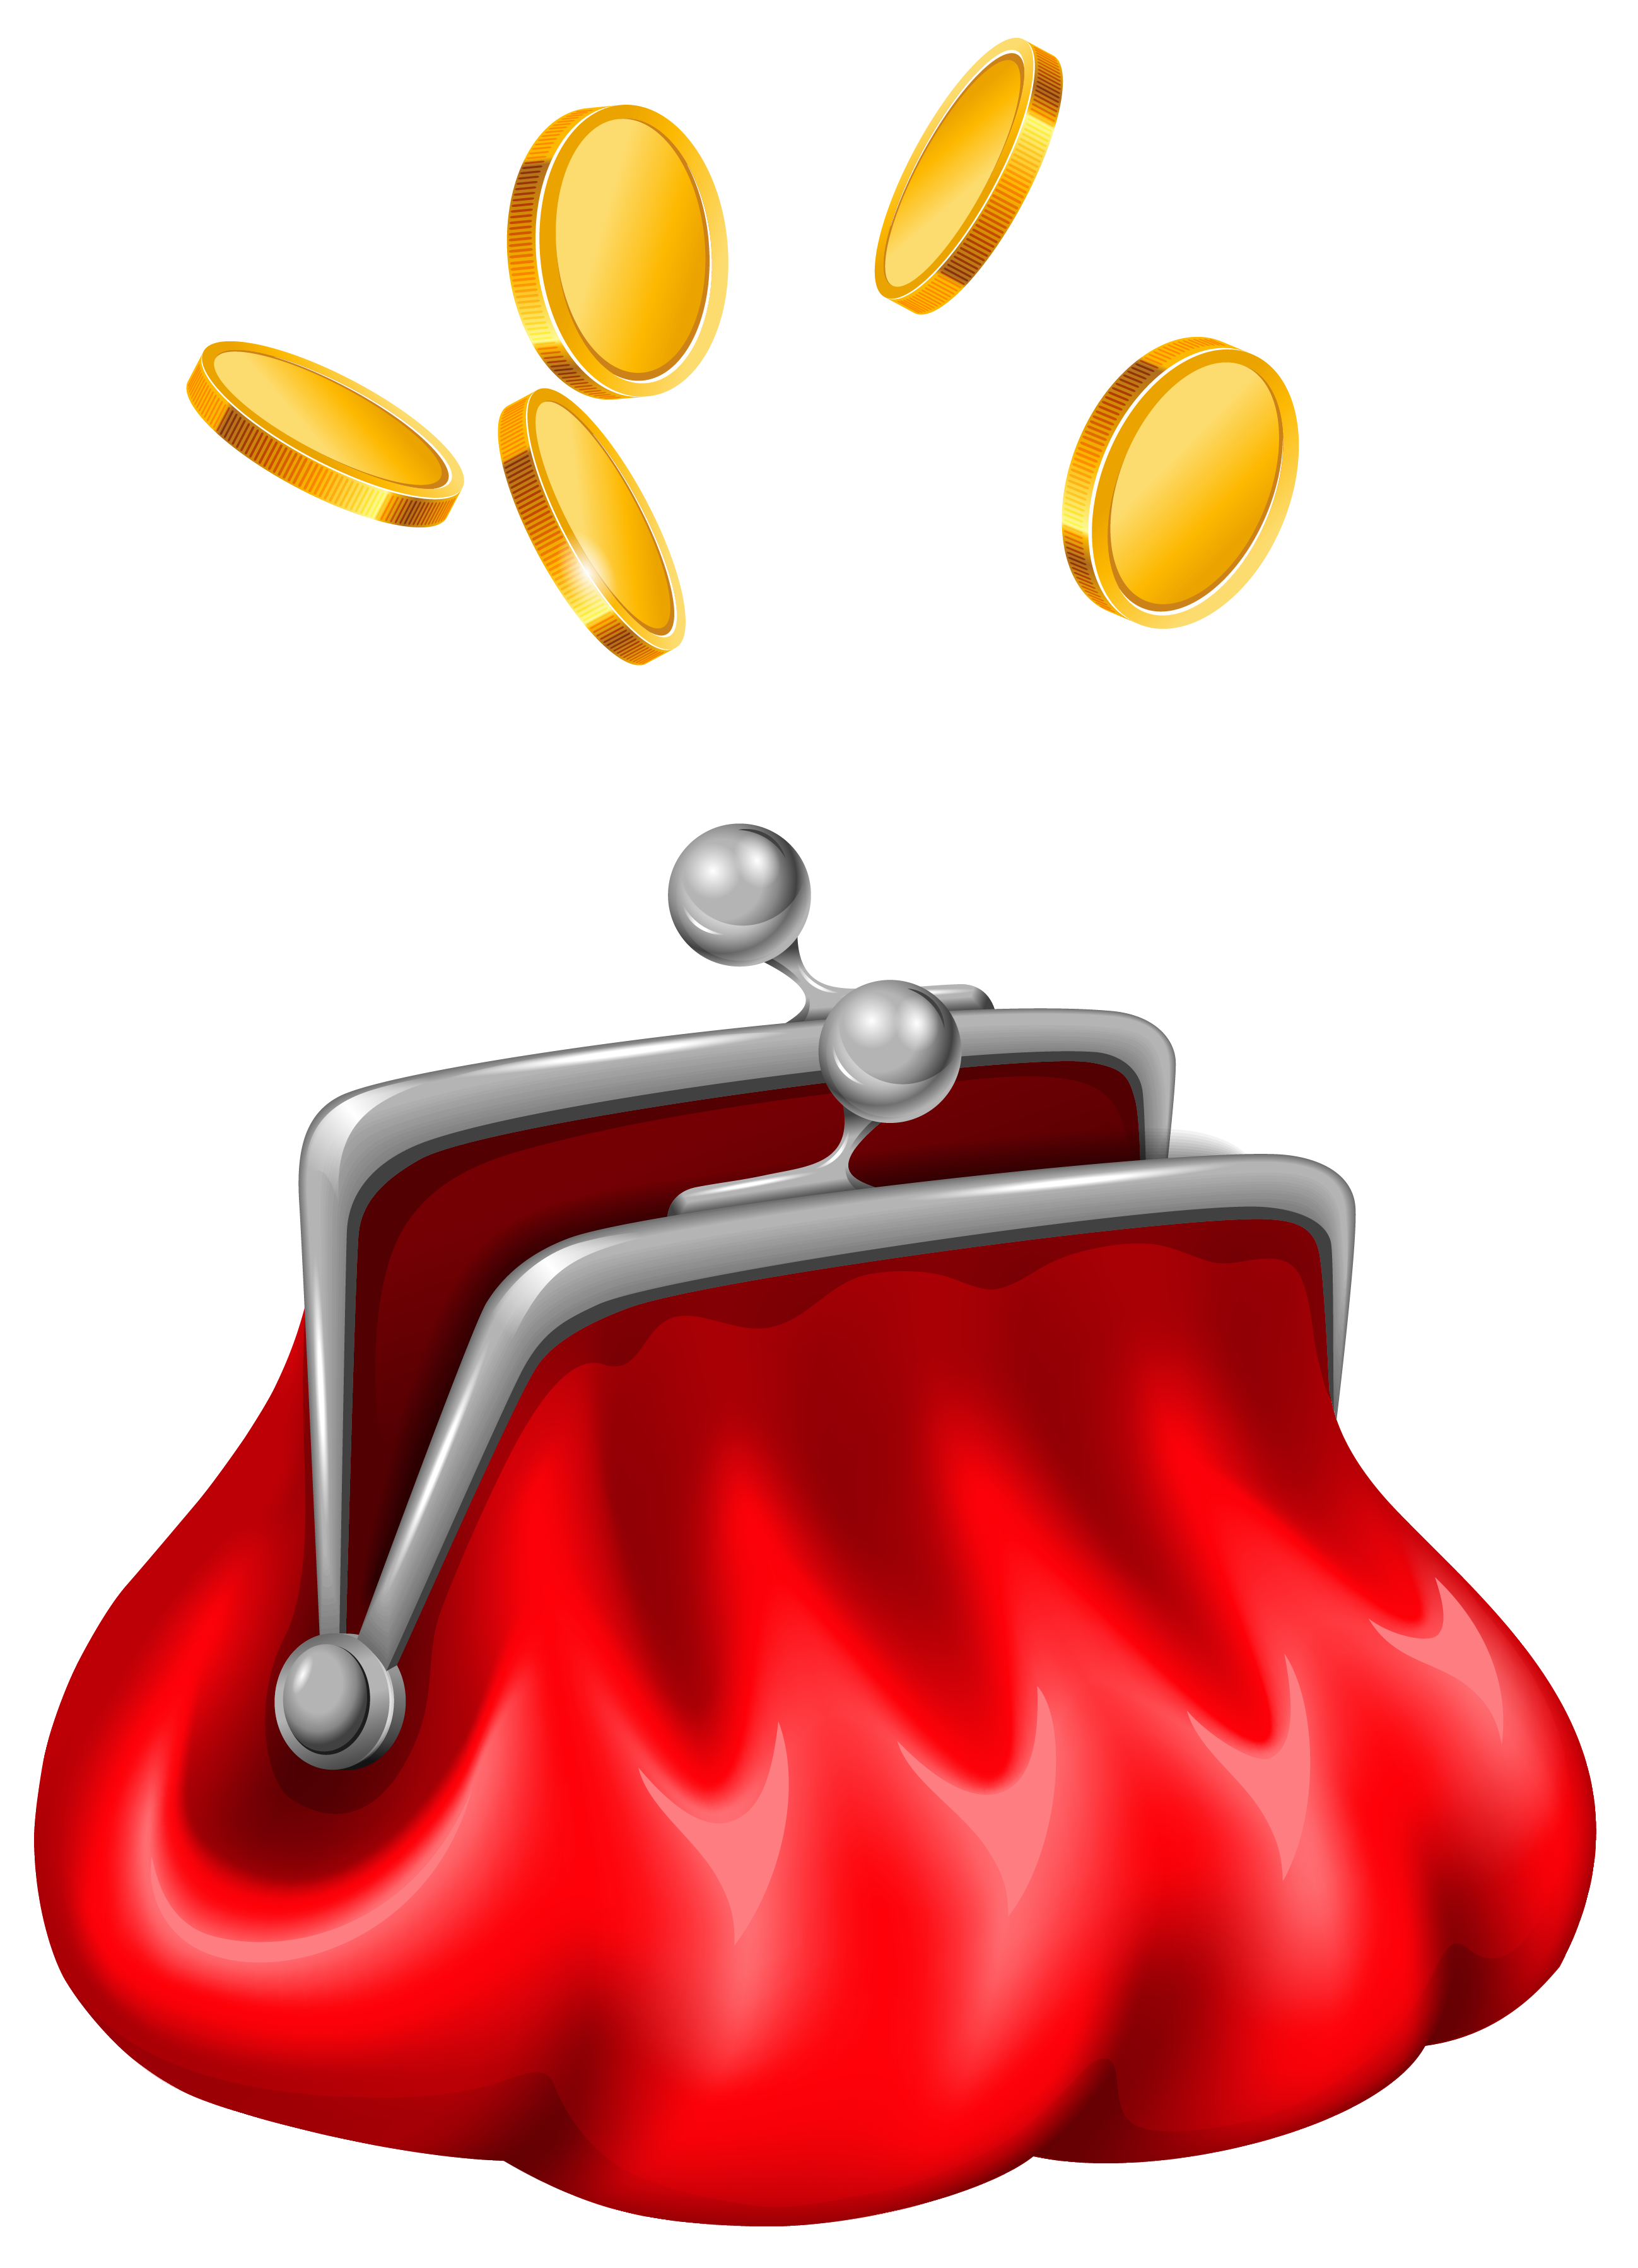 Coin purse clipart.